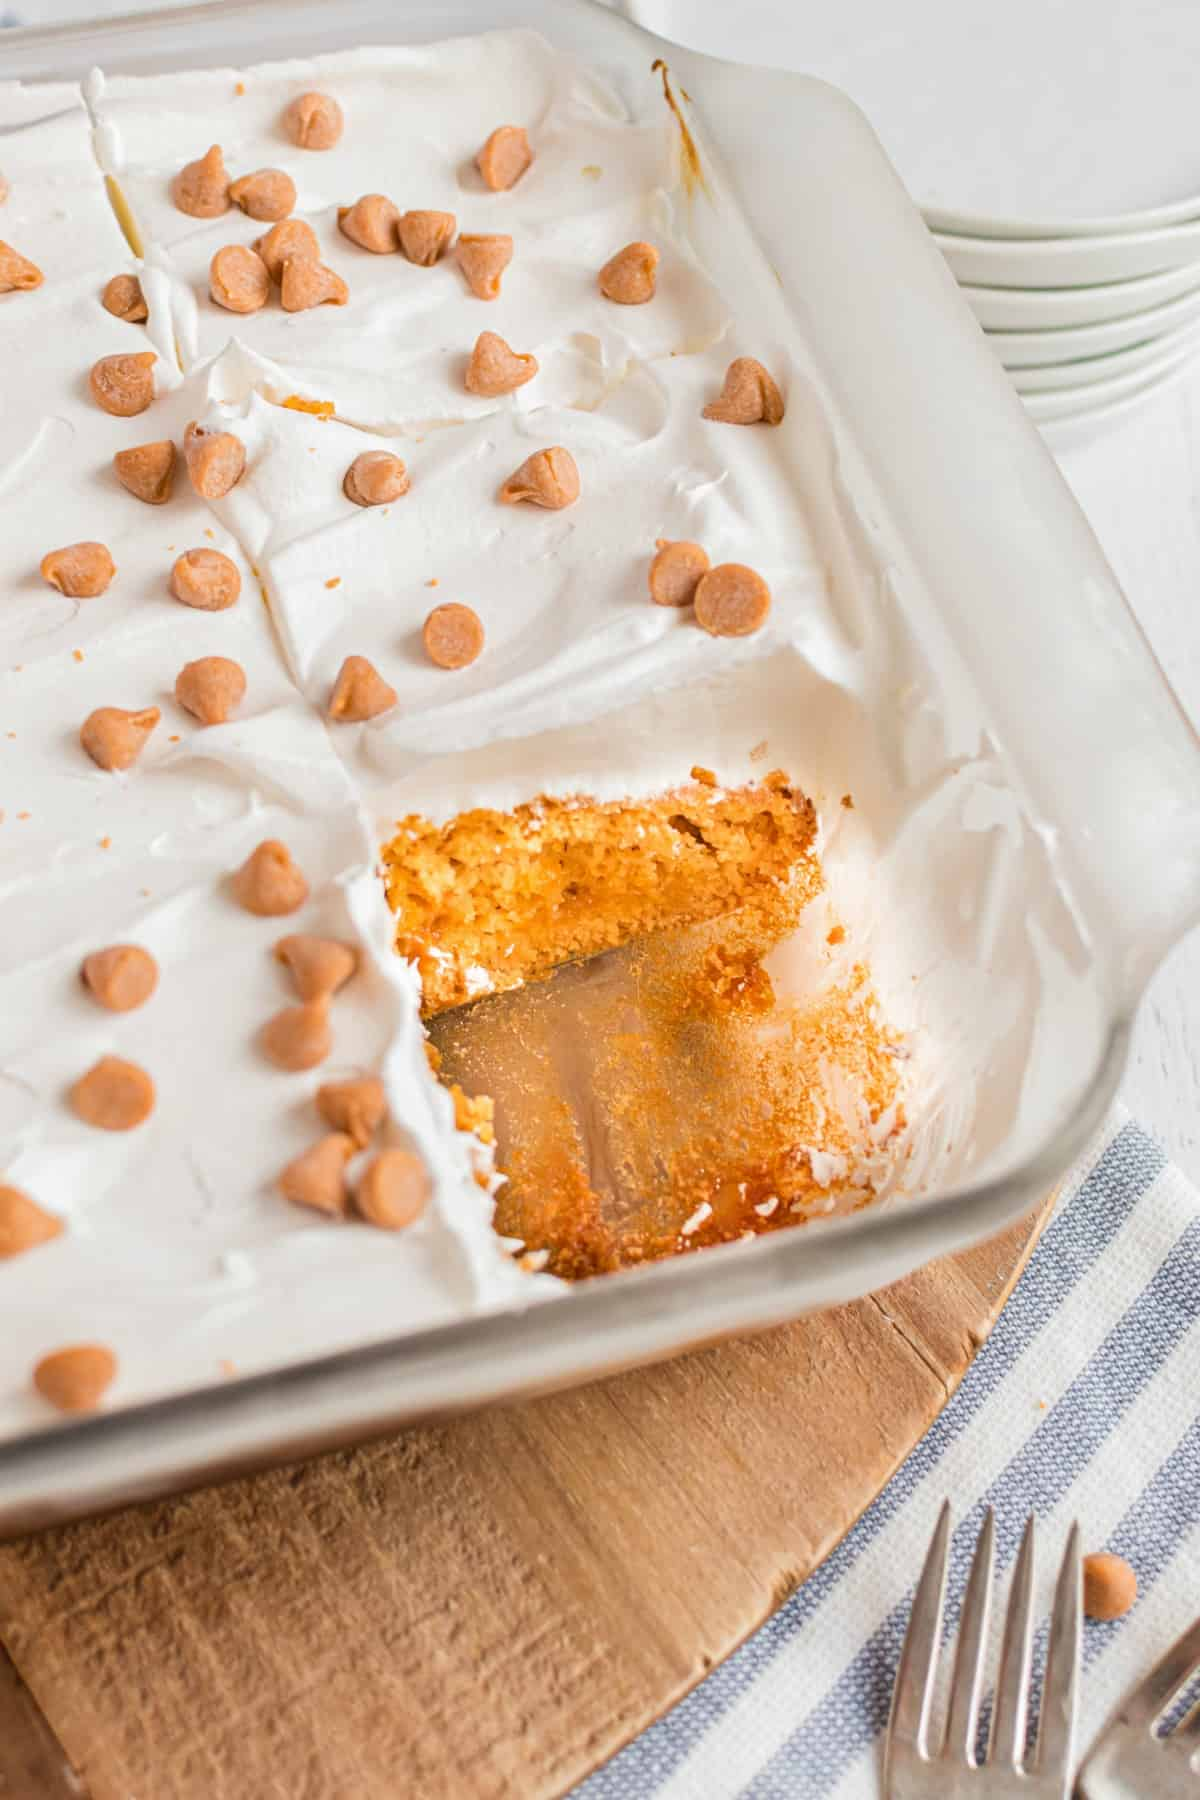 Glass 13x9 baking dish with a butterscotch pudding cake topped with cool whip, and one slice removed from the pan.